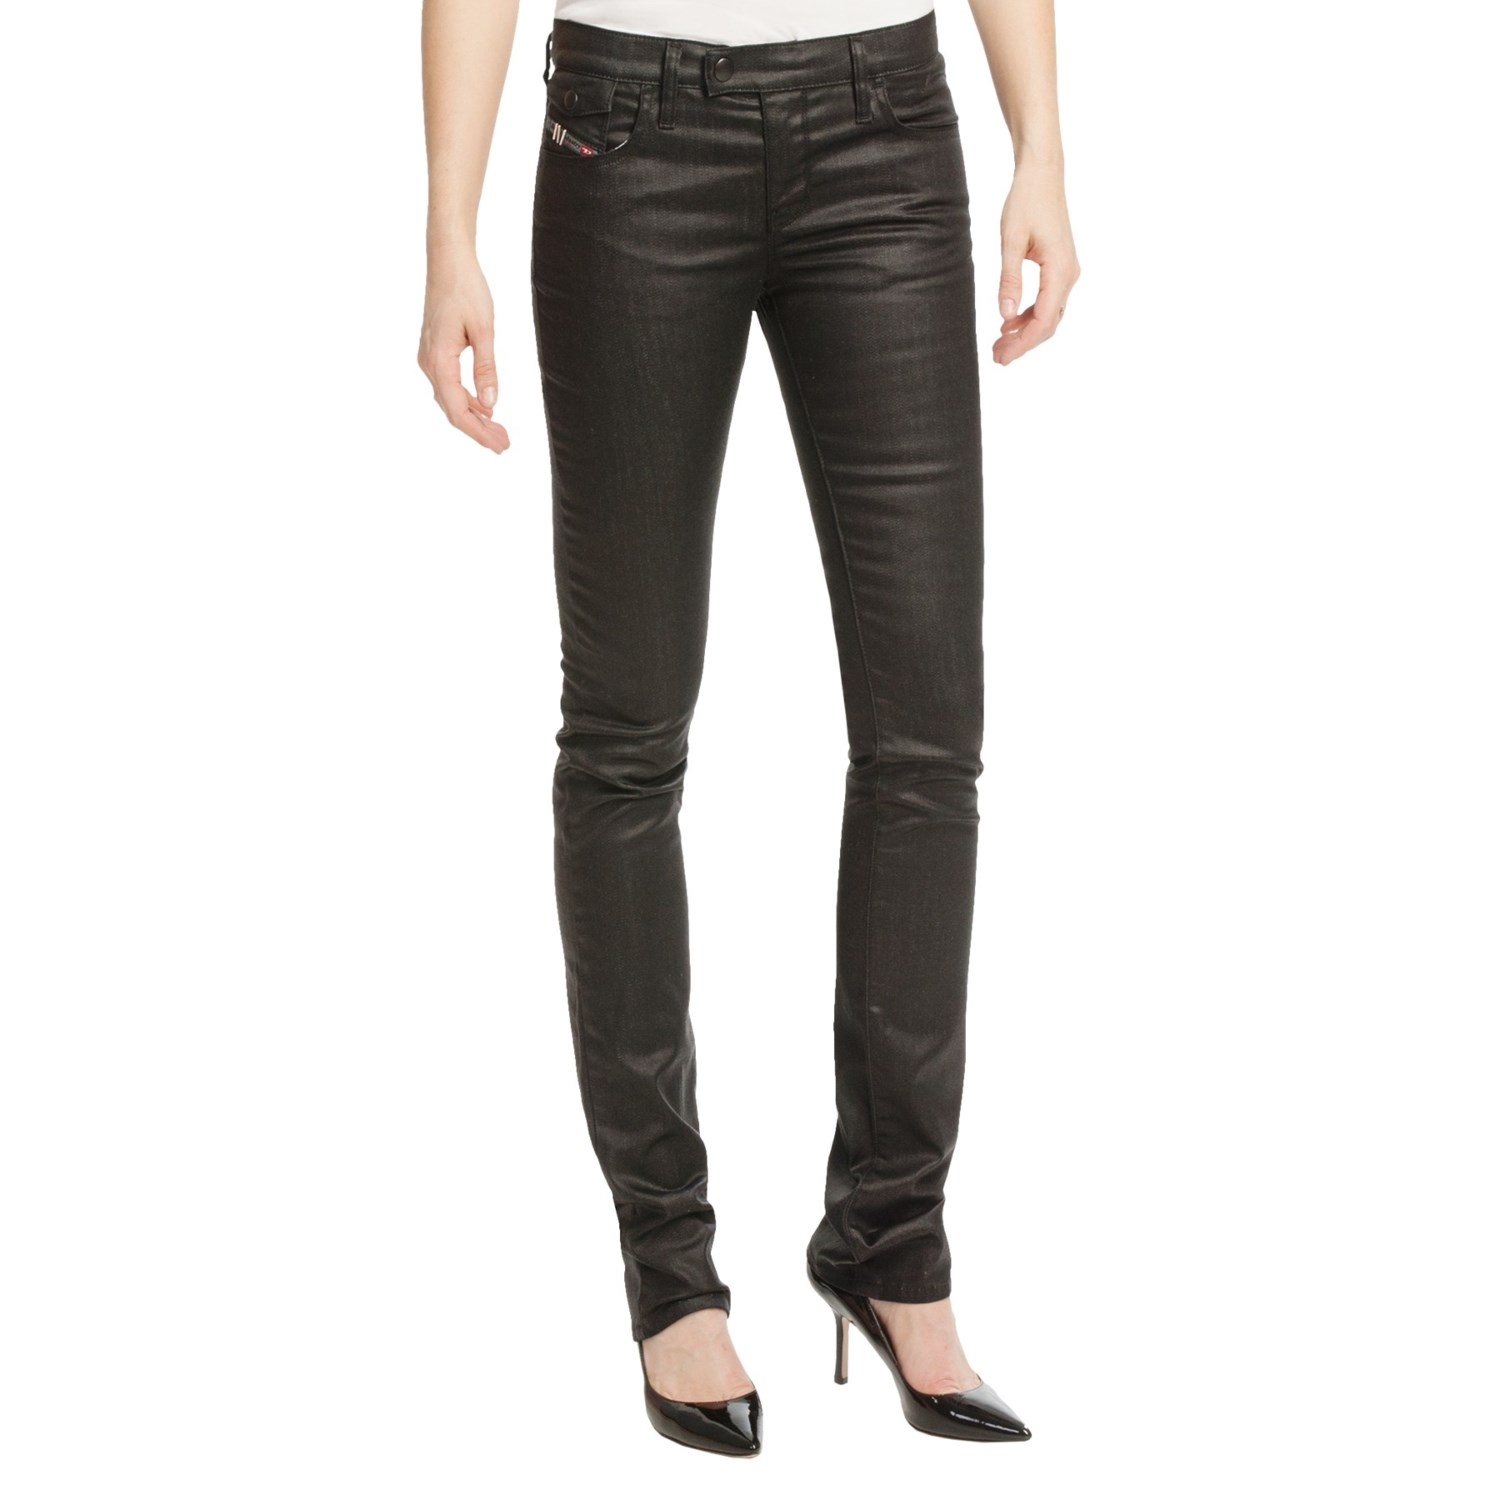 Cheap Black Skinny Jeans Womens - Xtellar Jeans